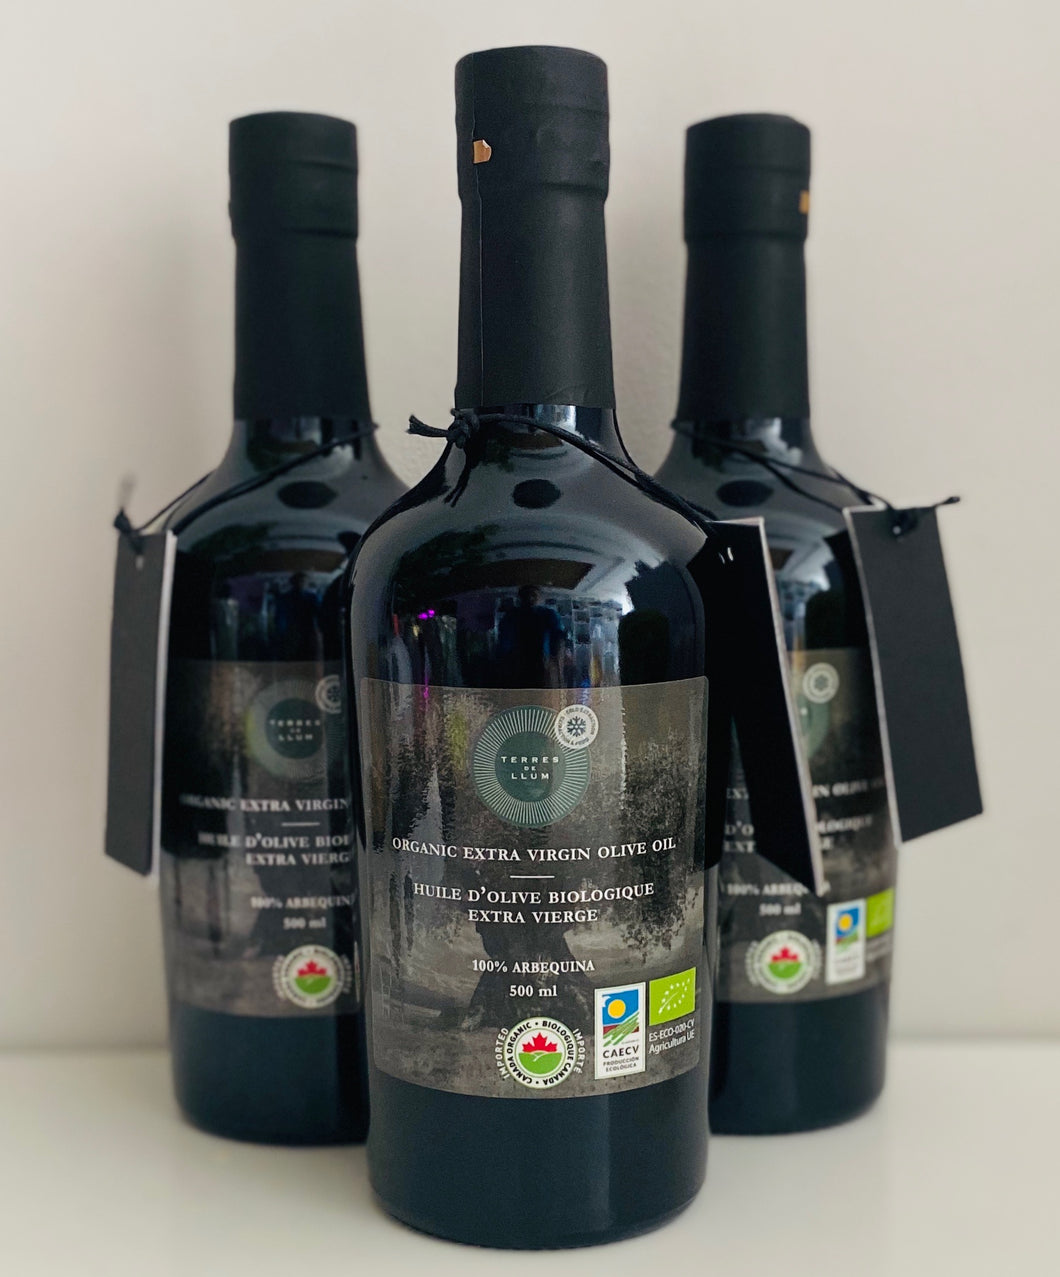 Spanish Organic Extra Virgin Olive Oil